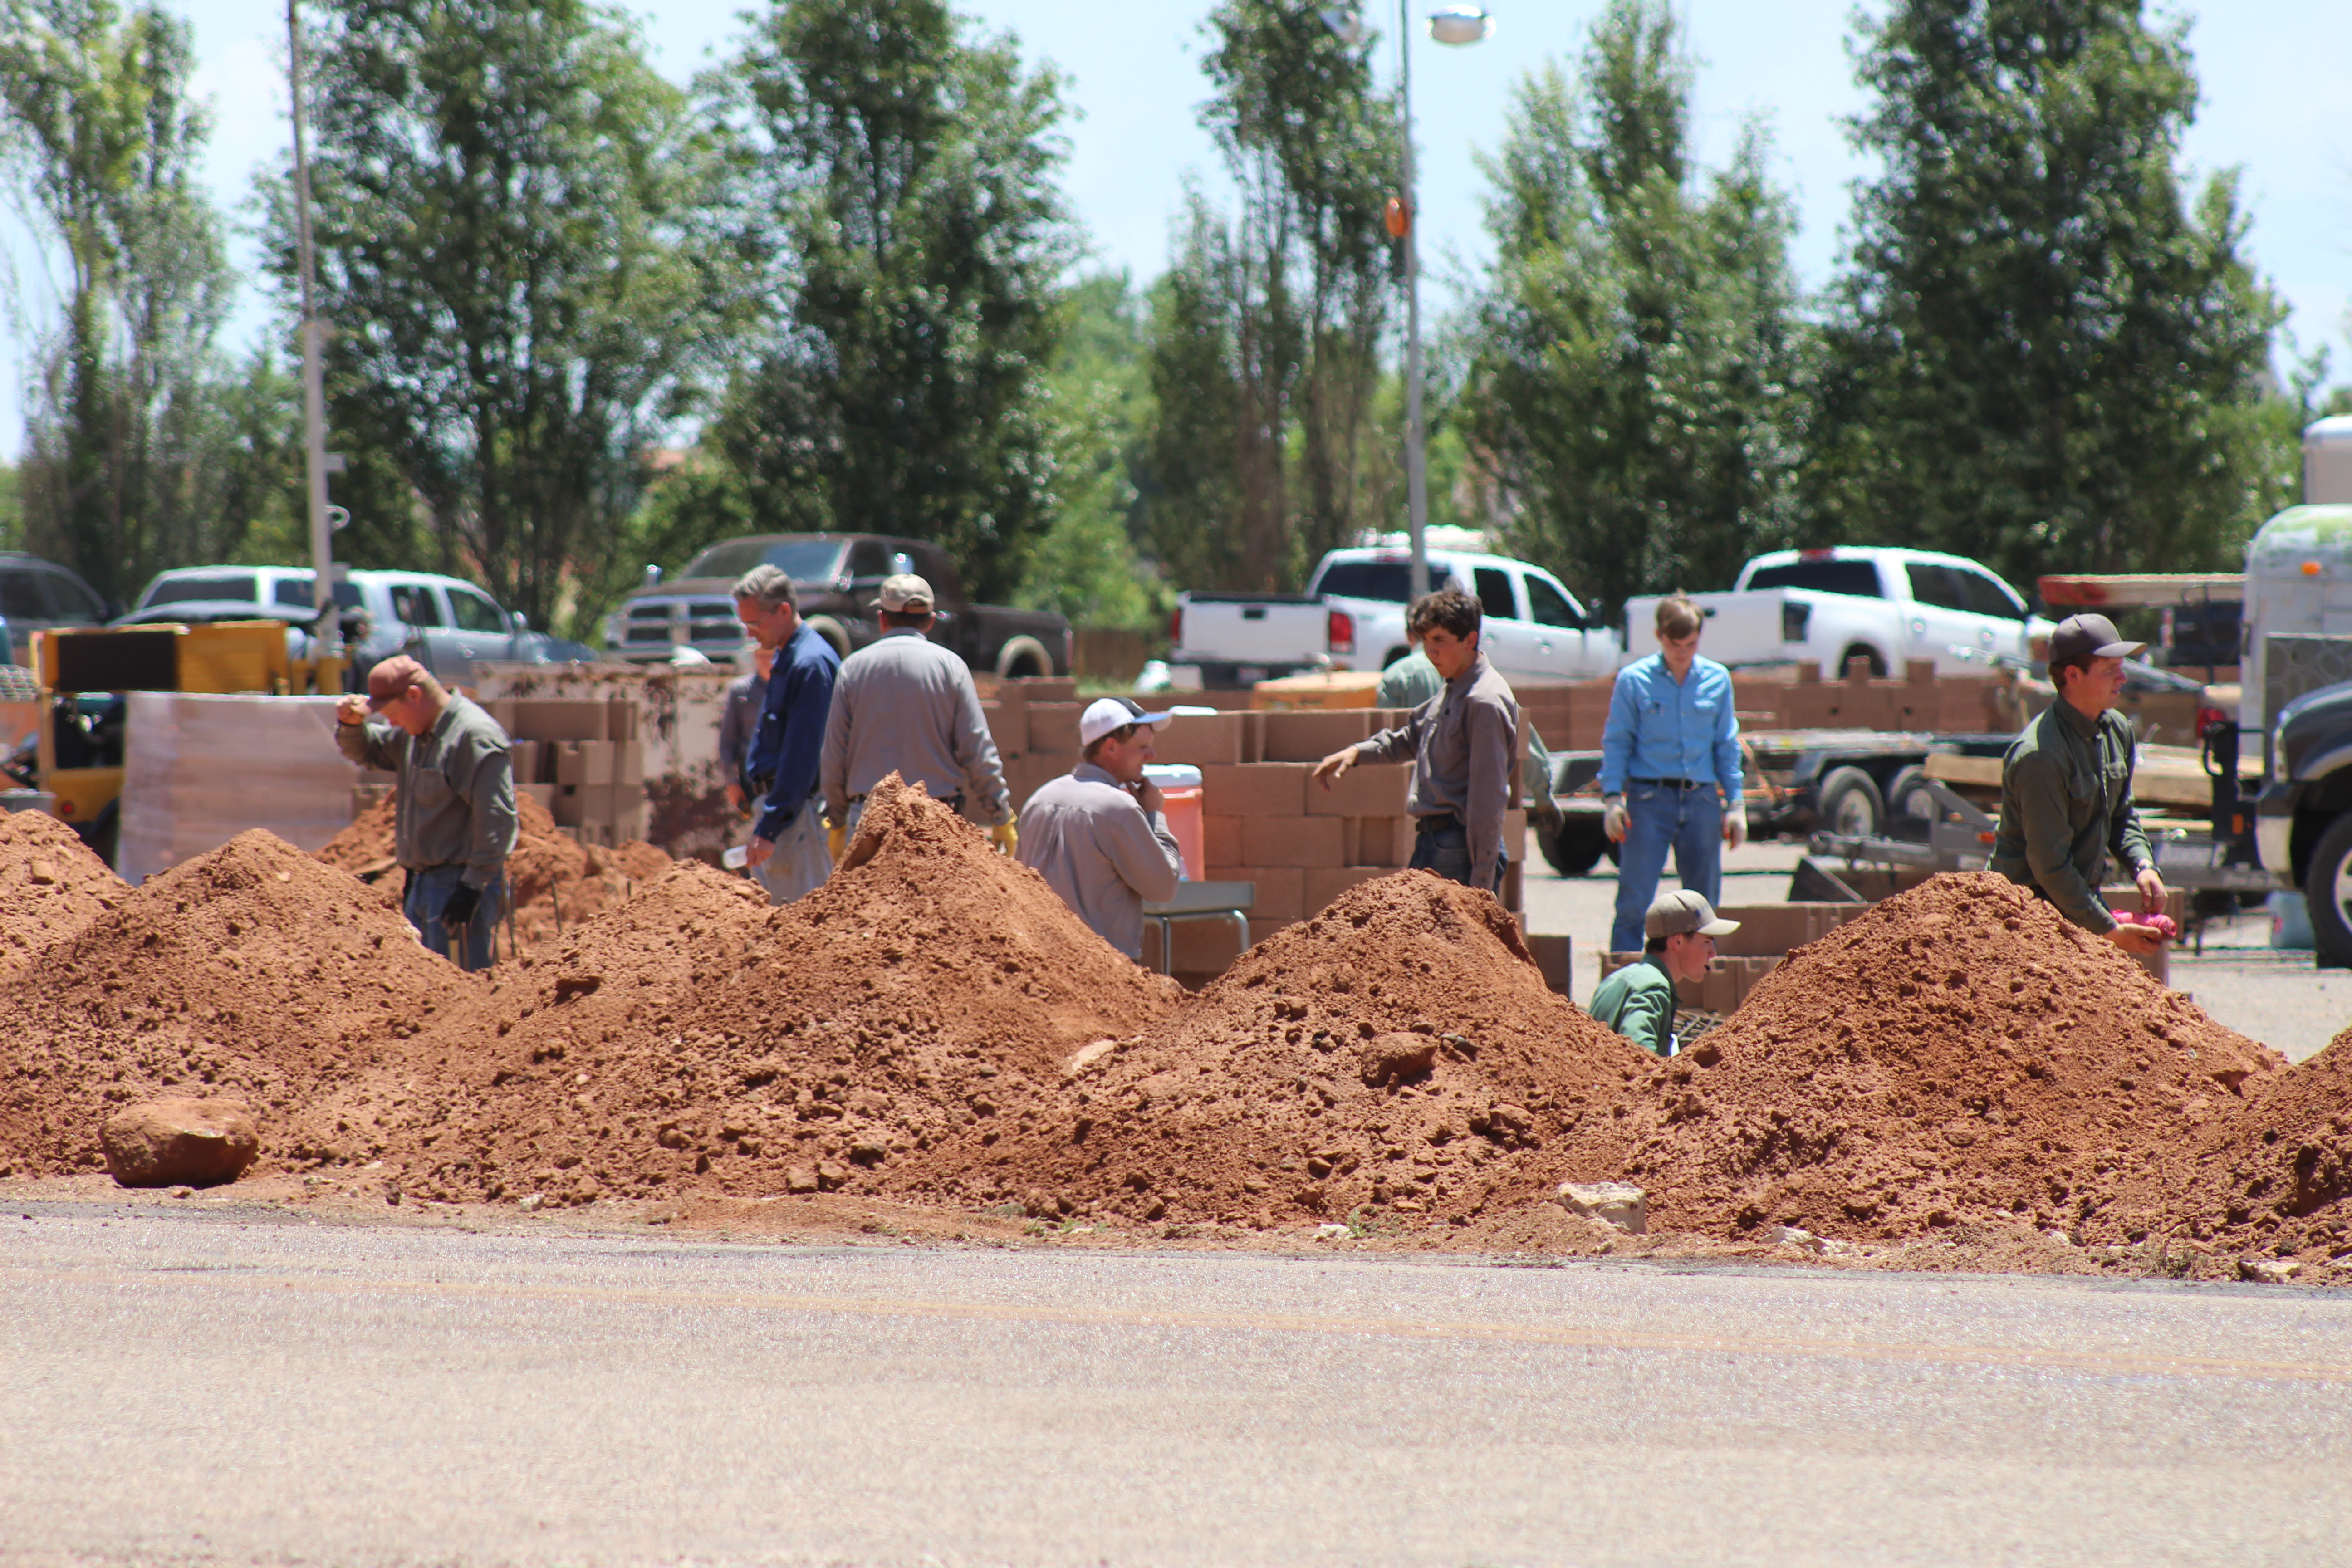 FILE — In this file photo, members of the FLDS church work to build a wall around the Leroy S. Johnson Meeting House, Colorado City, Arizona, July 2, 2015 | Photo by Nataly Burdick, St. George News